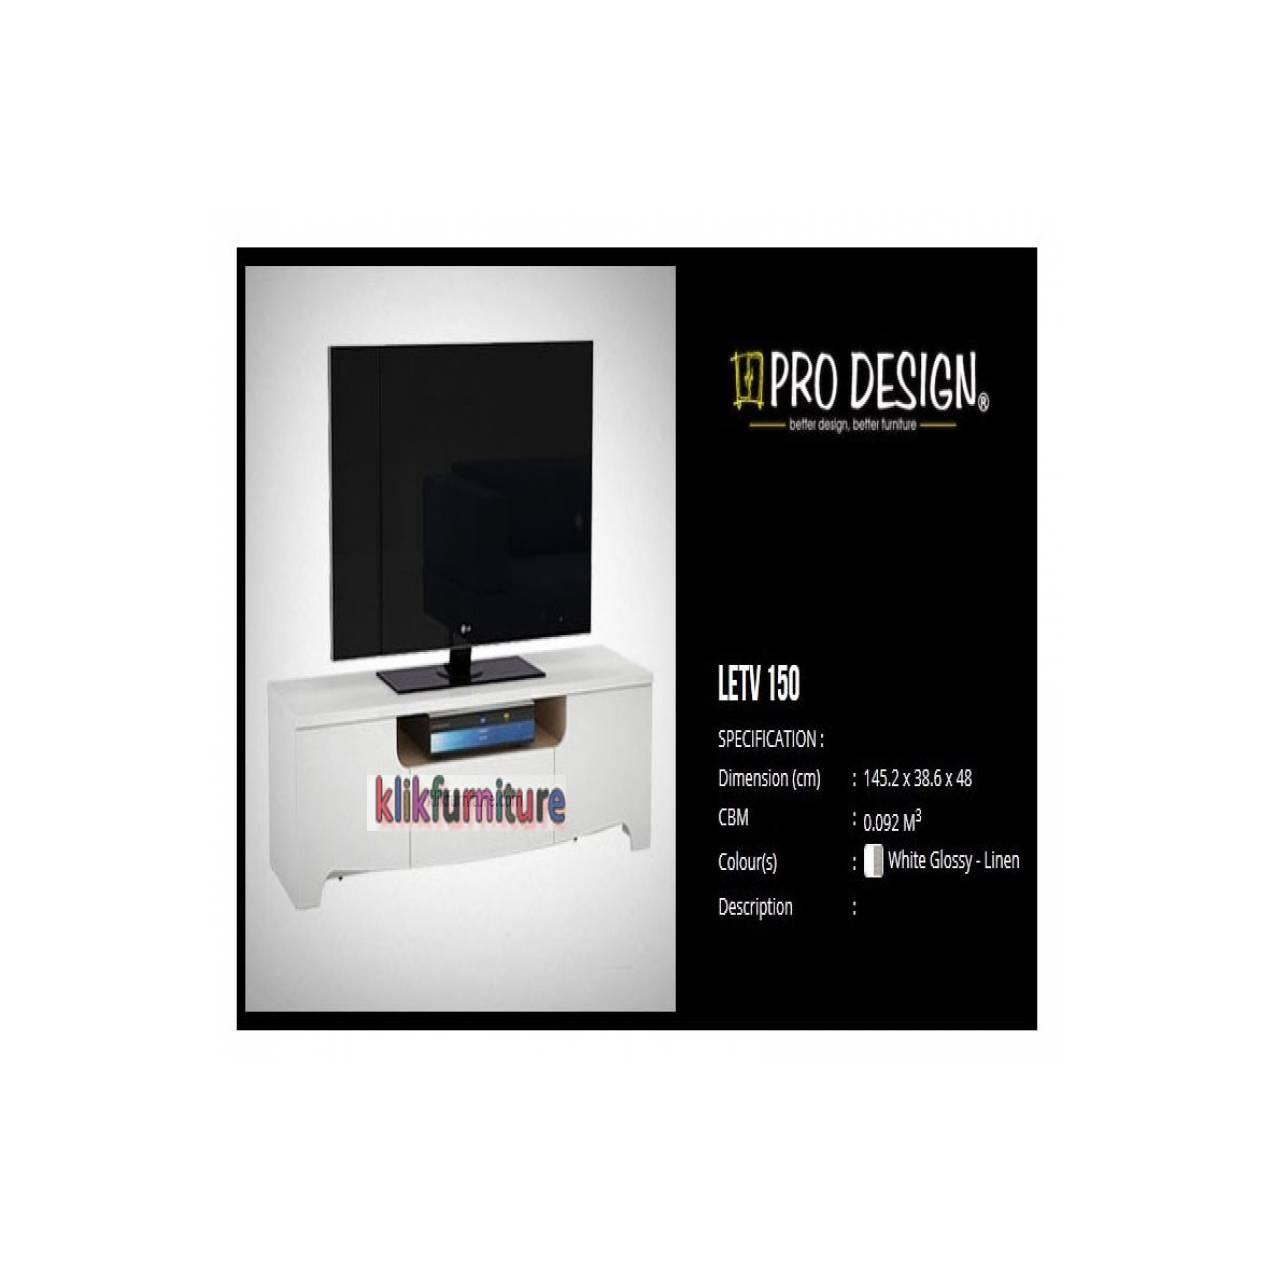 Buy Sell Cheapest Pro Design Legia Best Quality Product Deals Lemari Pakaian 3 Pintu 2 Laci White Glossy Linen Letv 150 Prodesign Bufet Tv Minimalis Putih